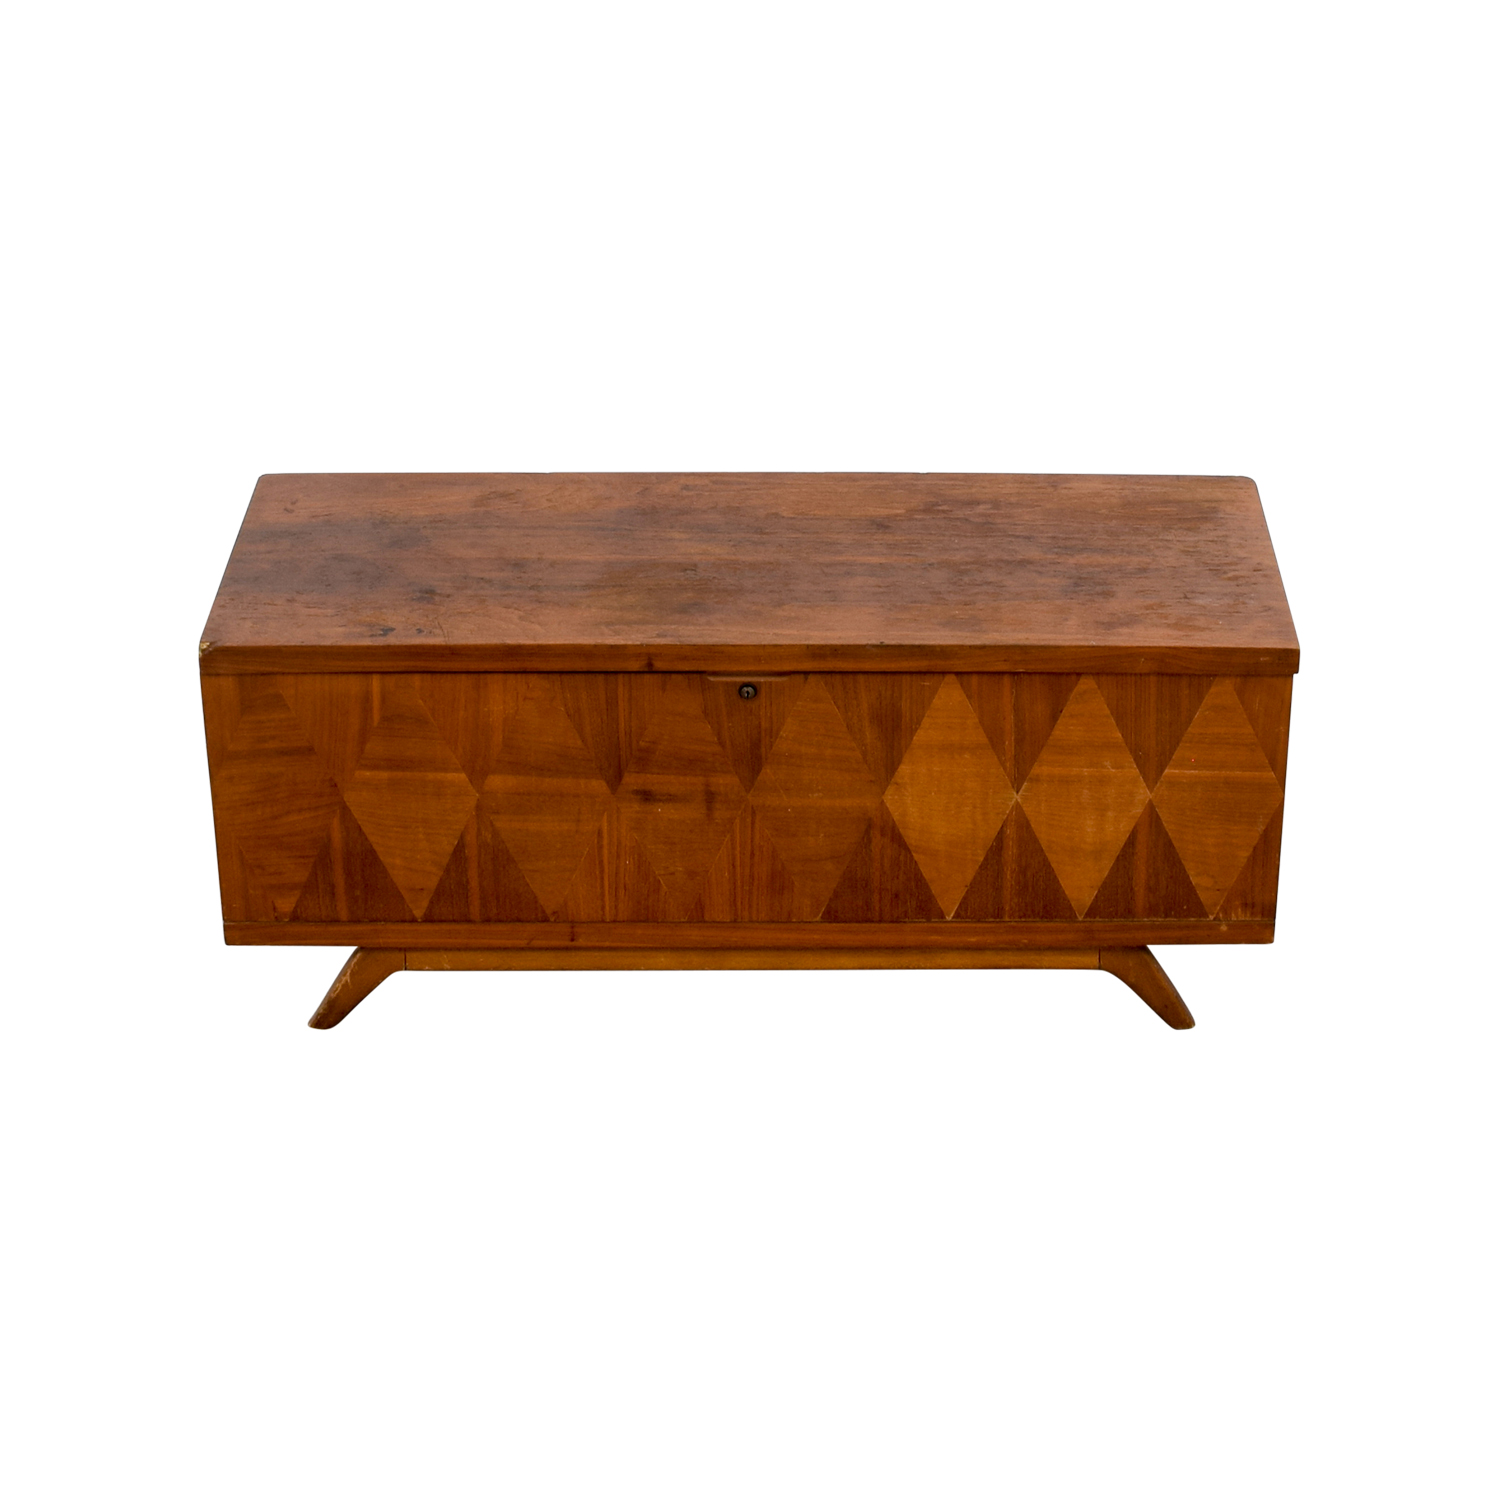 buy Lane Furniture Lane Furniture Wooden Trunk Coffee Table Storage Unit online